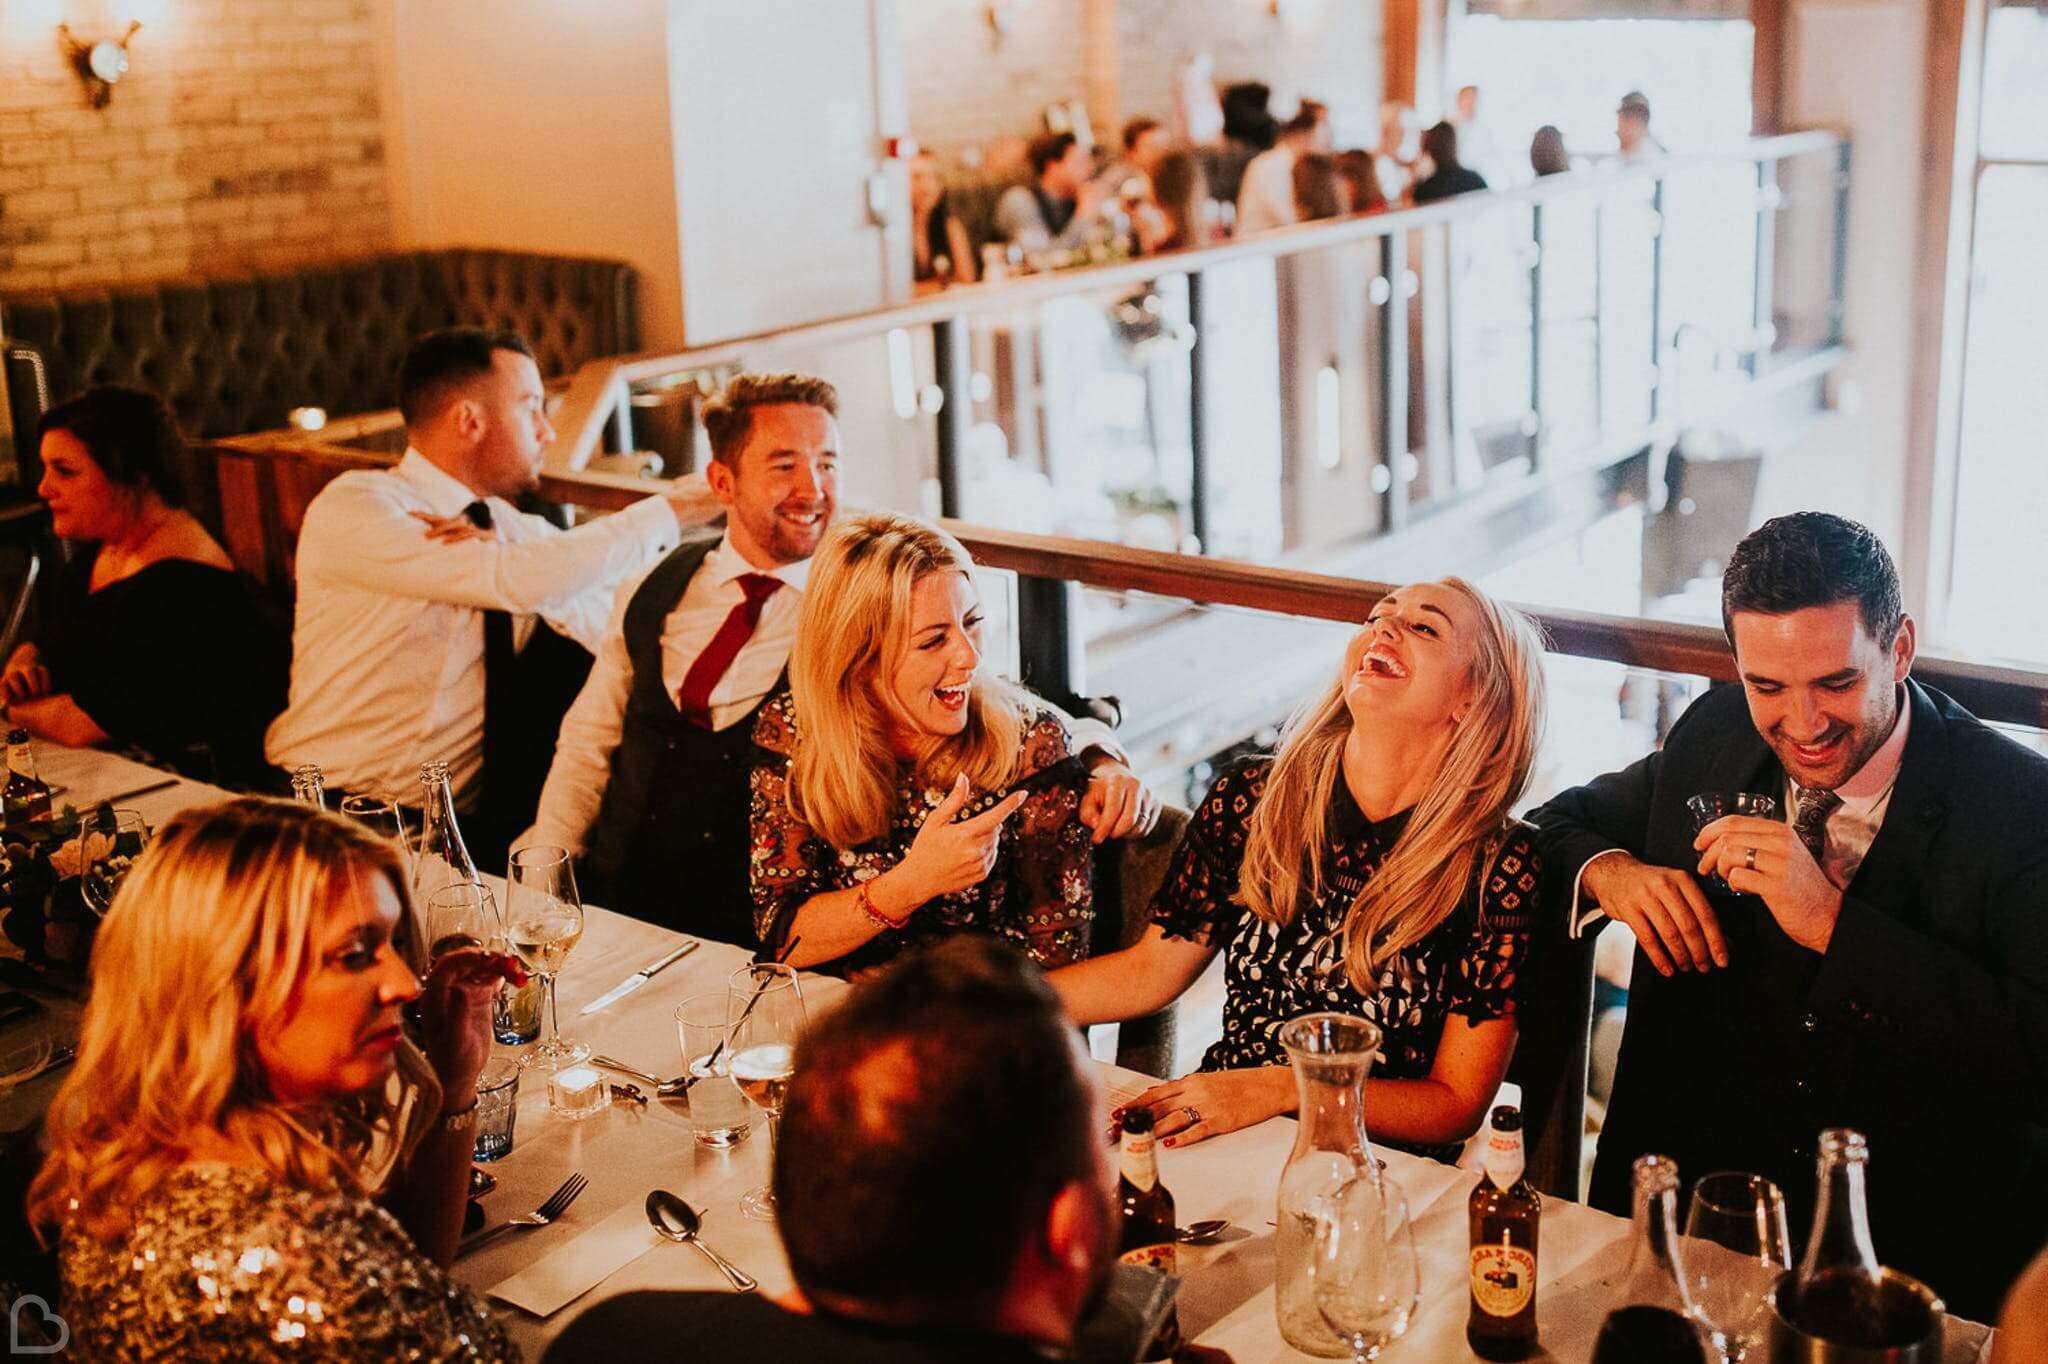 guests laugh and drink at st. bart's brewery in london